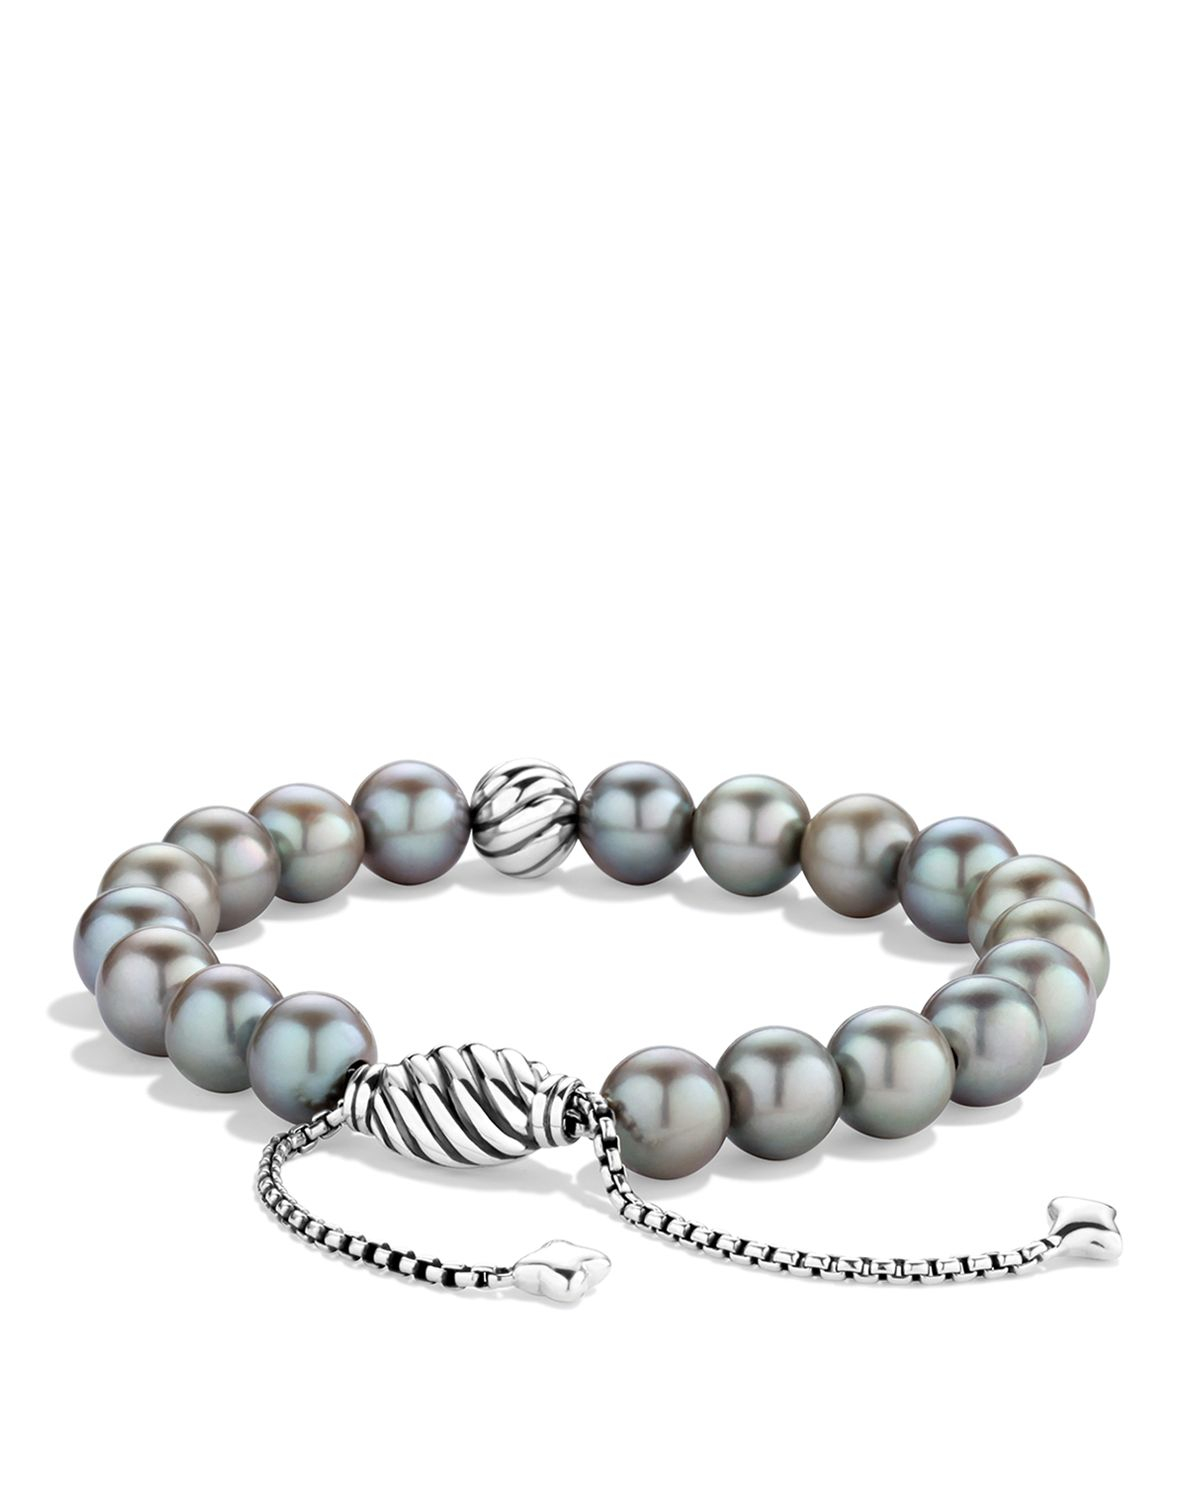 david yurman spiritual bracelet with gray pearls in